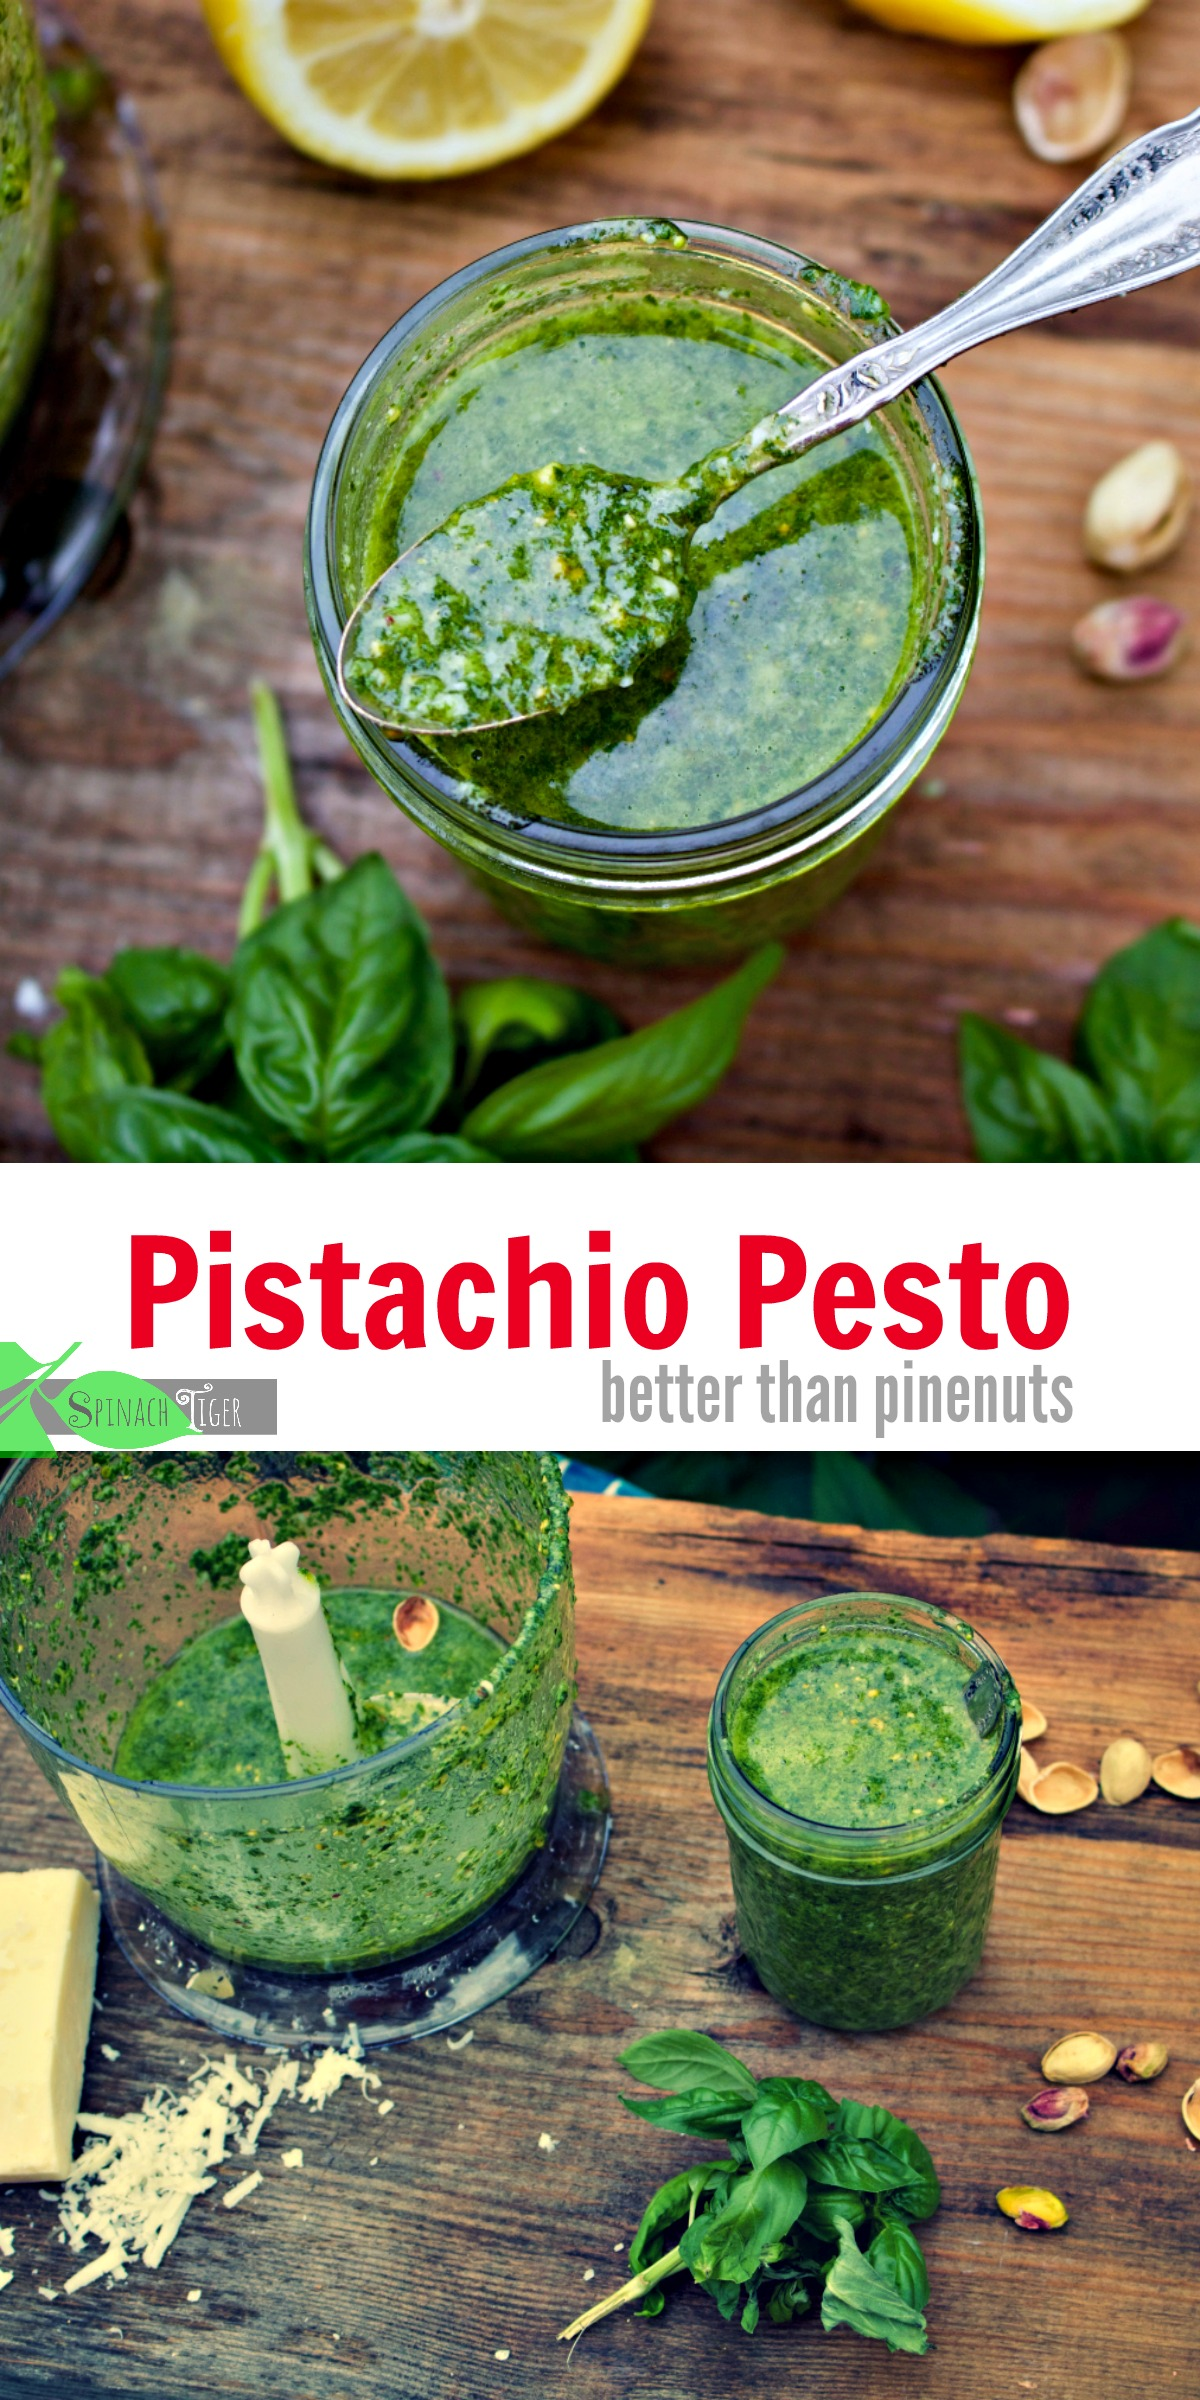 How to Make Pistachio Pesto from Spinach Tiger